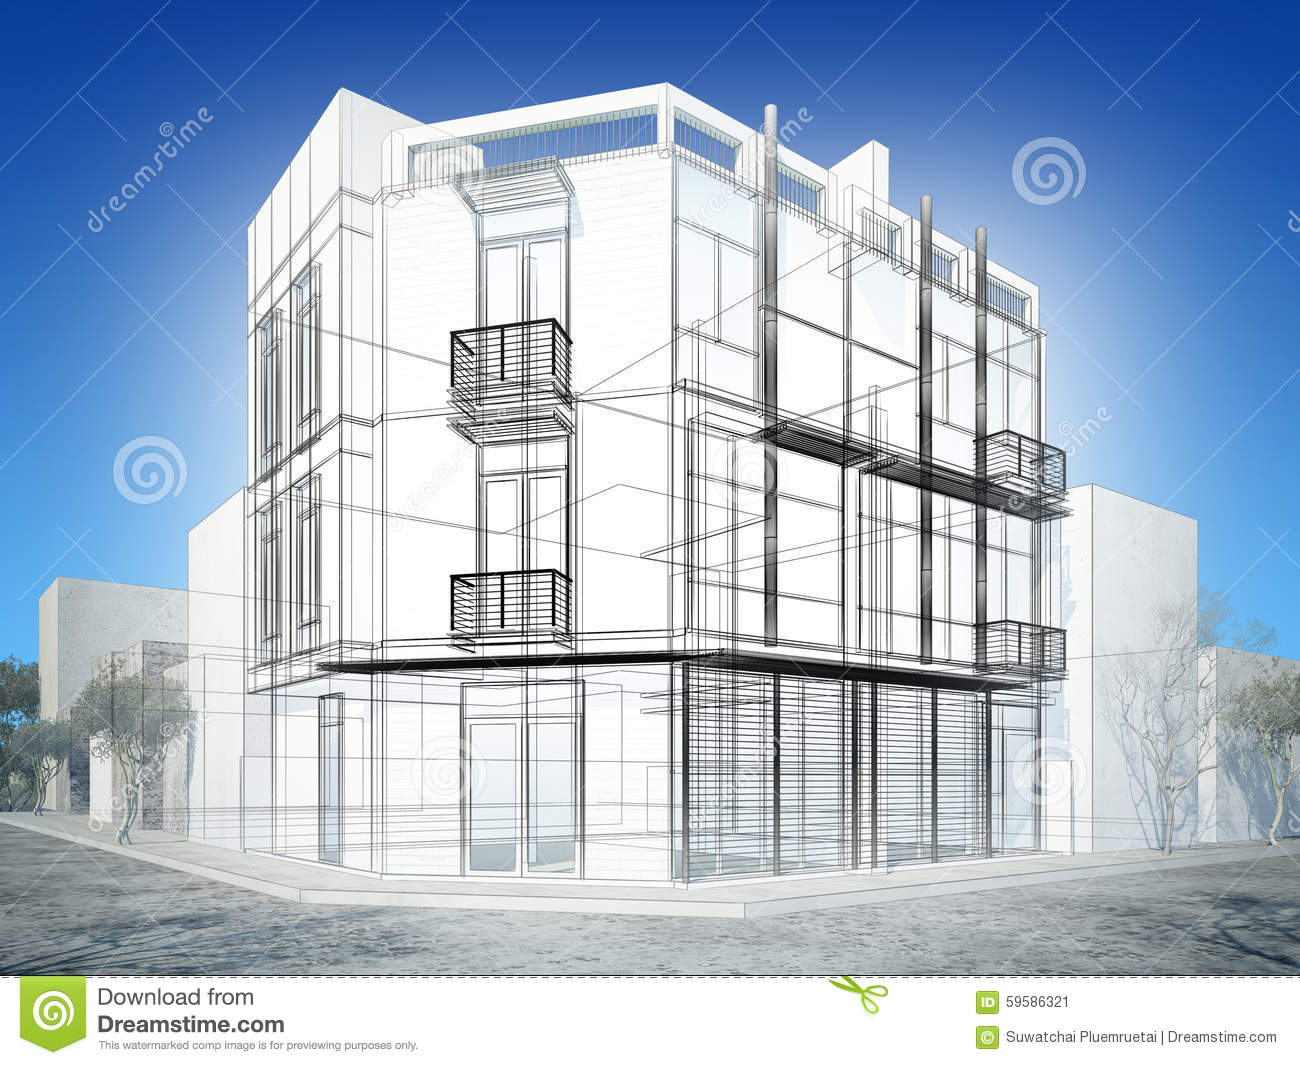 Exterior Building Design abstract sketch design of exterior building stock photo - image